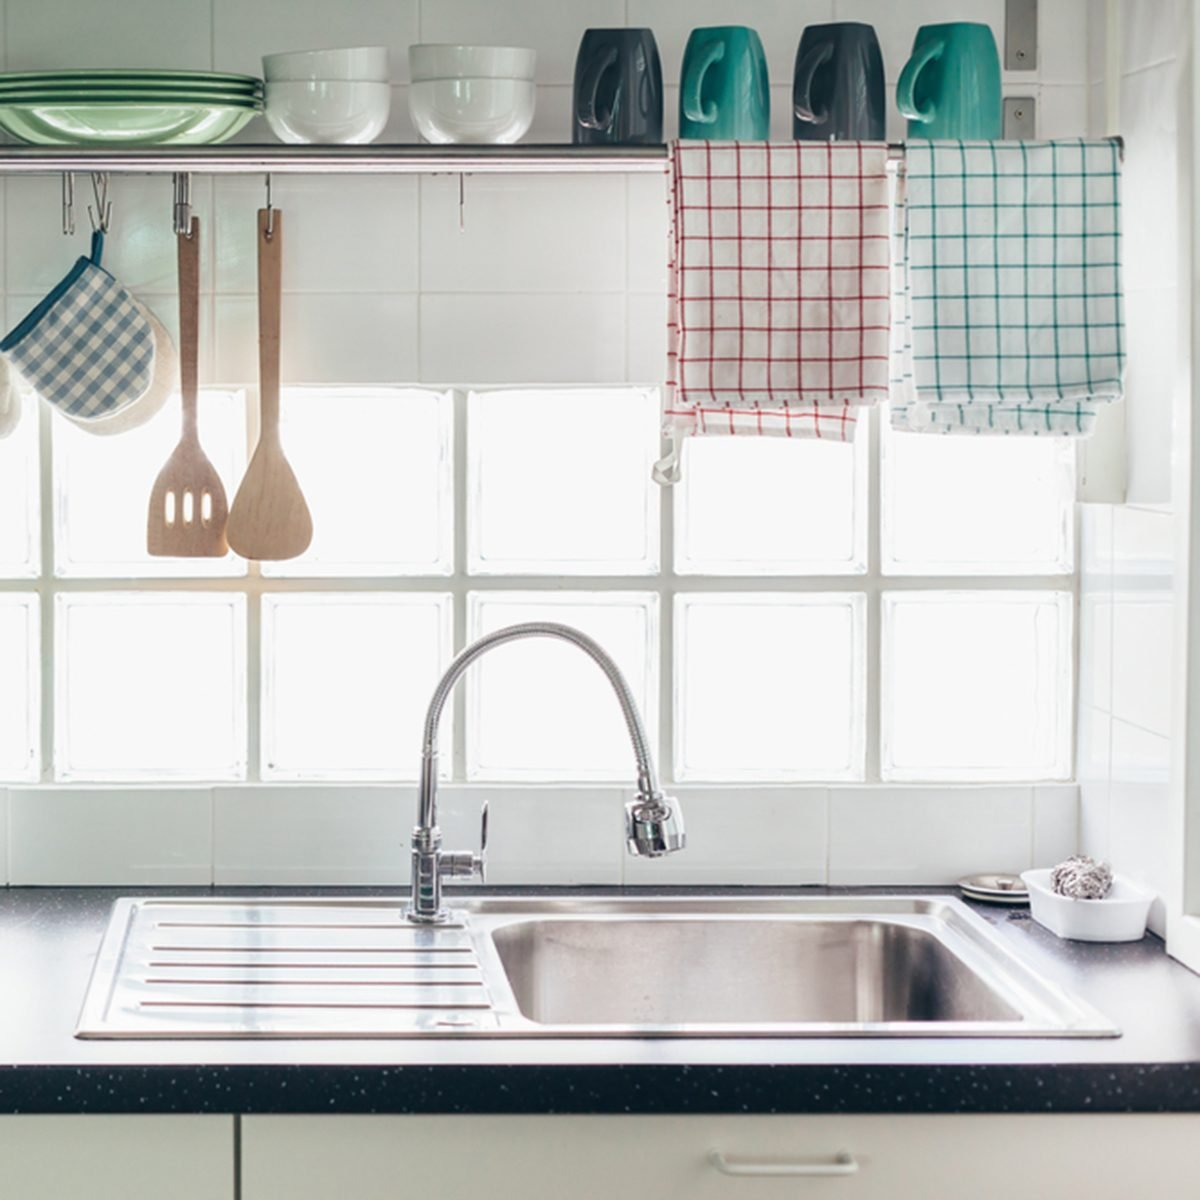 10 Tips For Tidying Your Kitchen According To Marie Kondo Taste Of Home